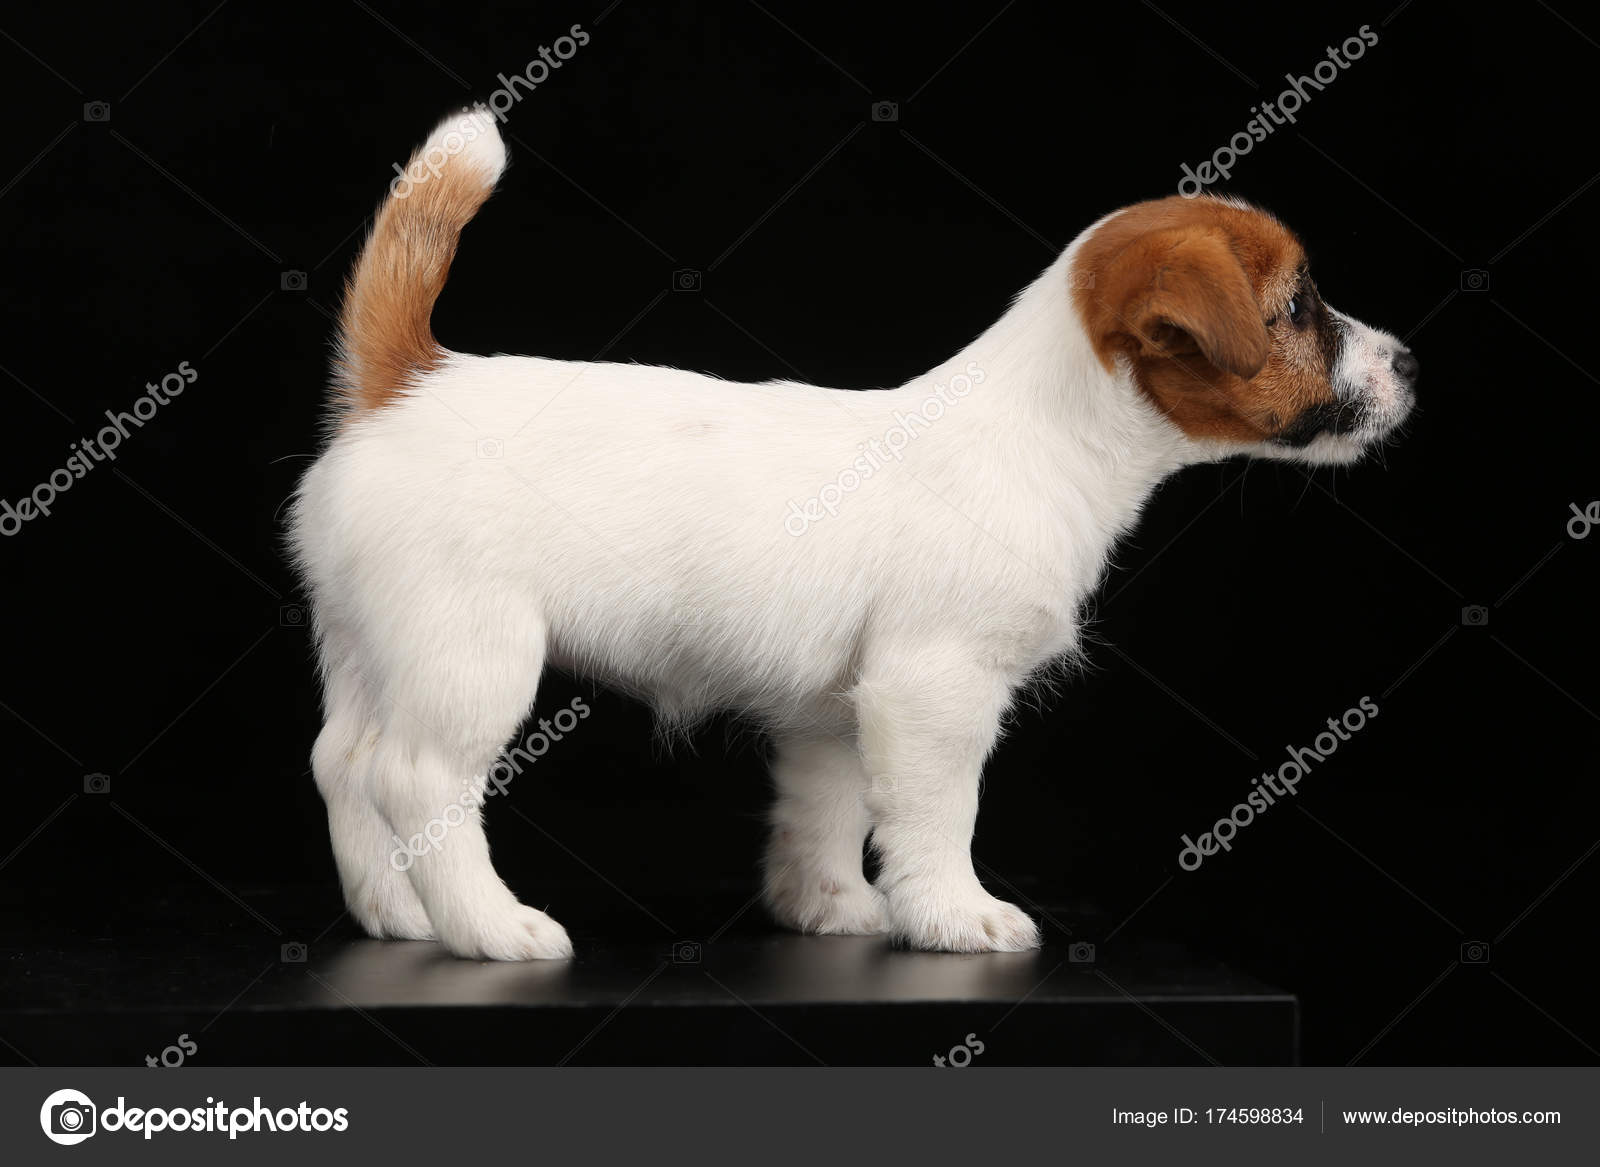 Cute Baby Dog In Profile Black Background Stock Photo